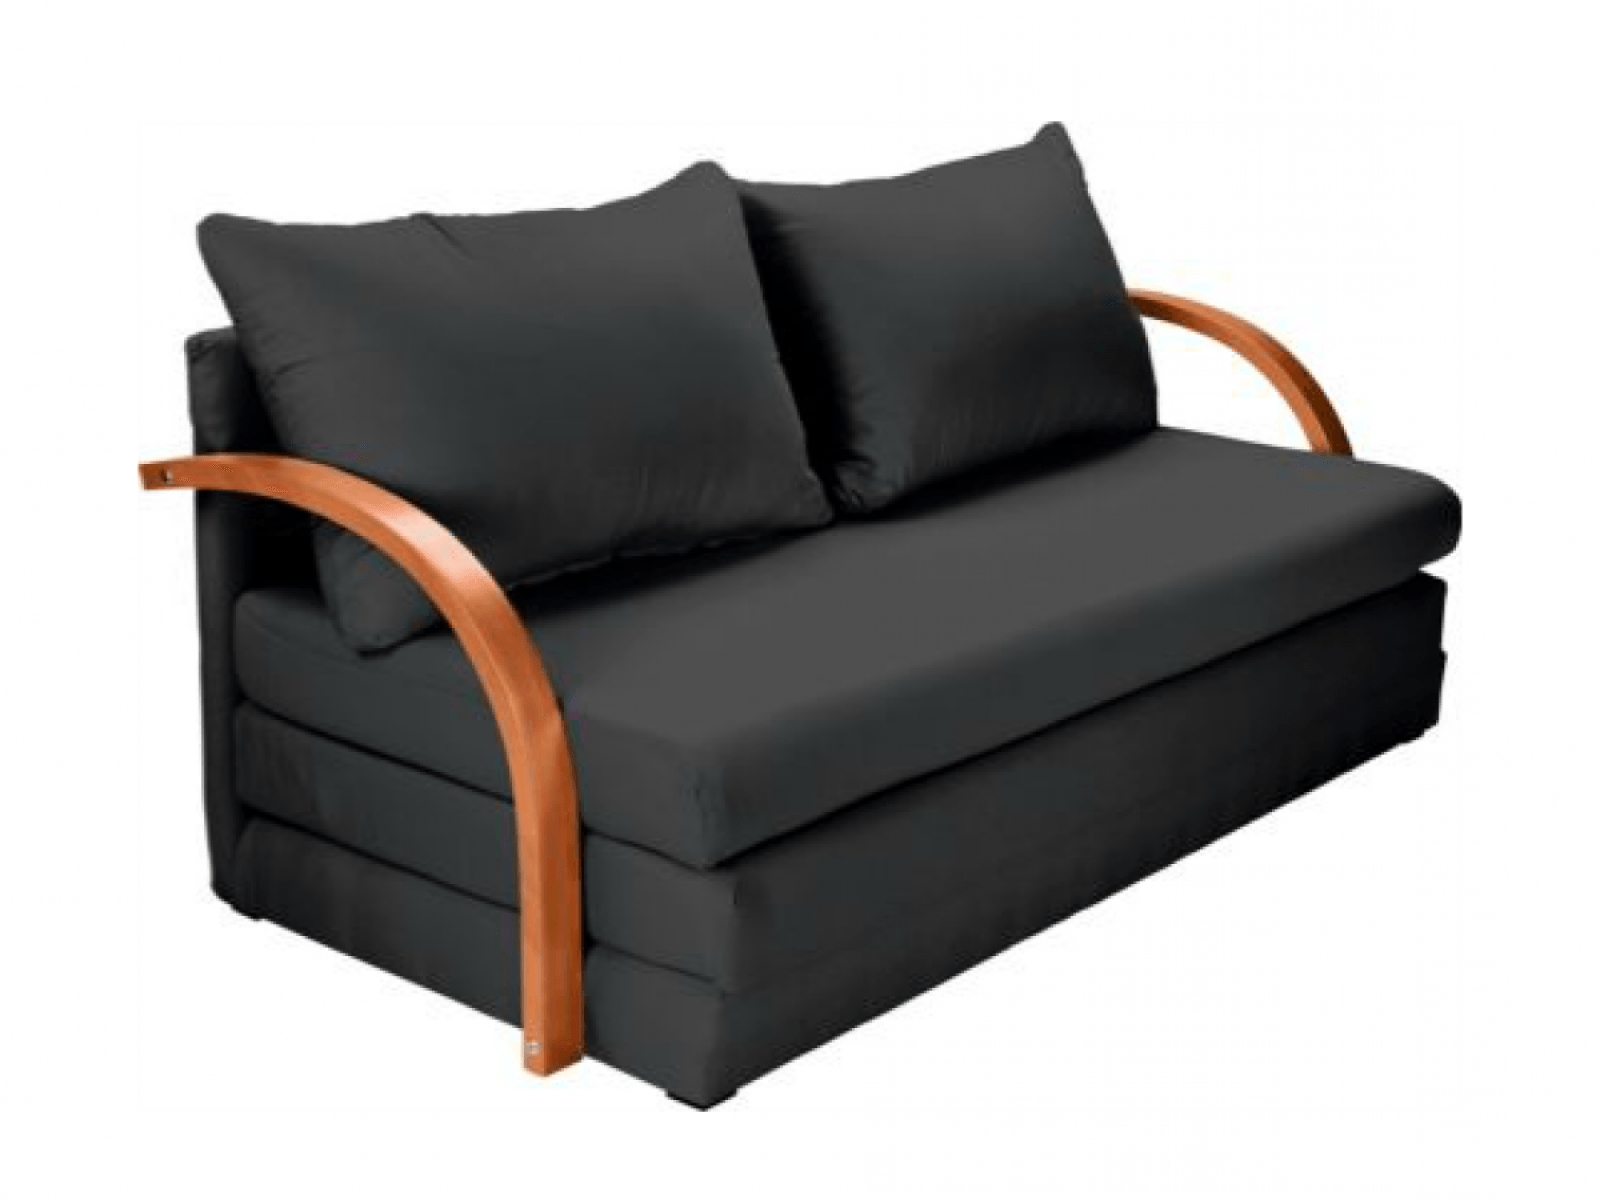 Widely Used ▻ Sofa : 31 Amusing Sofa Beds Sears 70 For Jackknife Sofa Bed For For Sears Sofas (View 12 of 15)